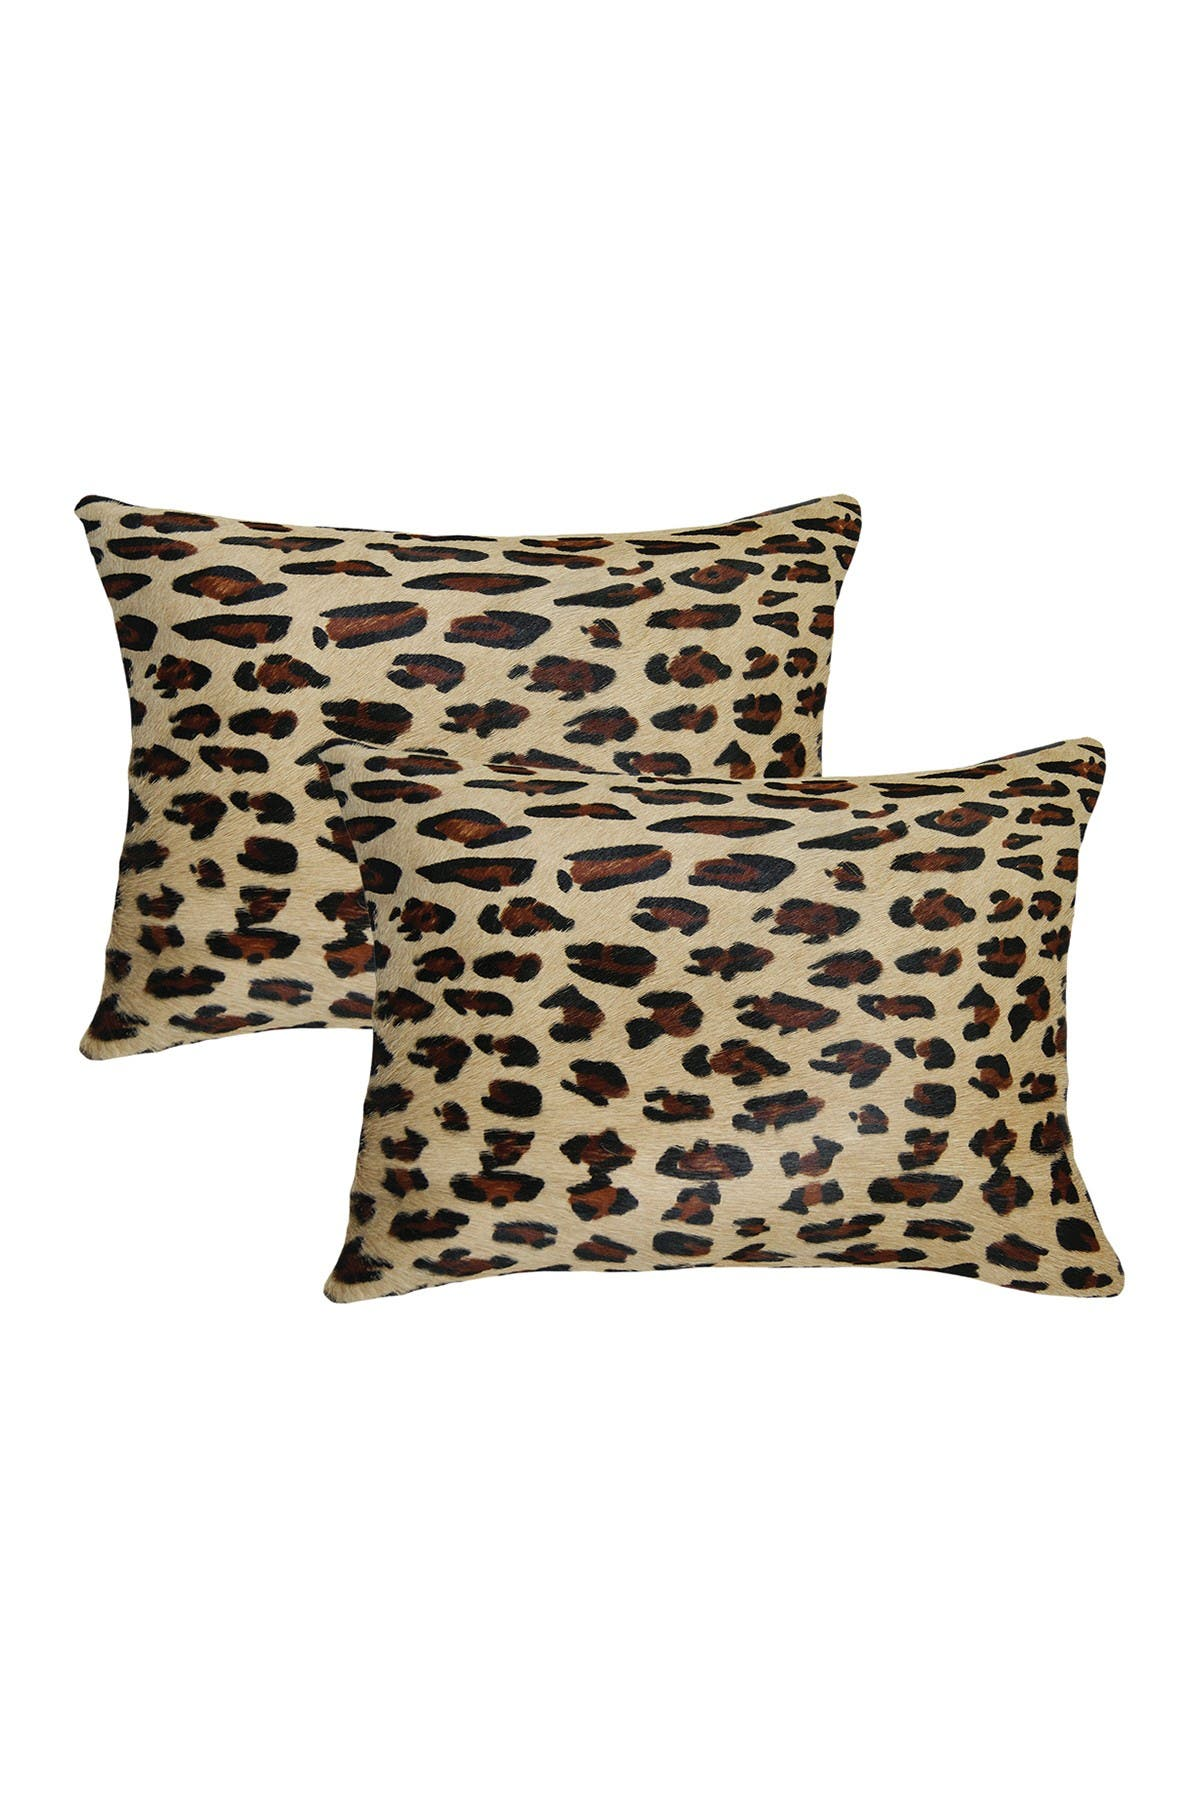 """Image of Natural Torino Togo Cowhide Pillow 12"""" x 20"""" - Leopard - Pack of 2"""